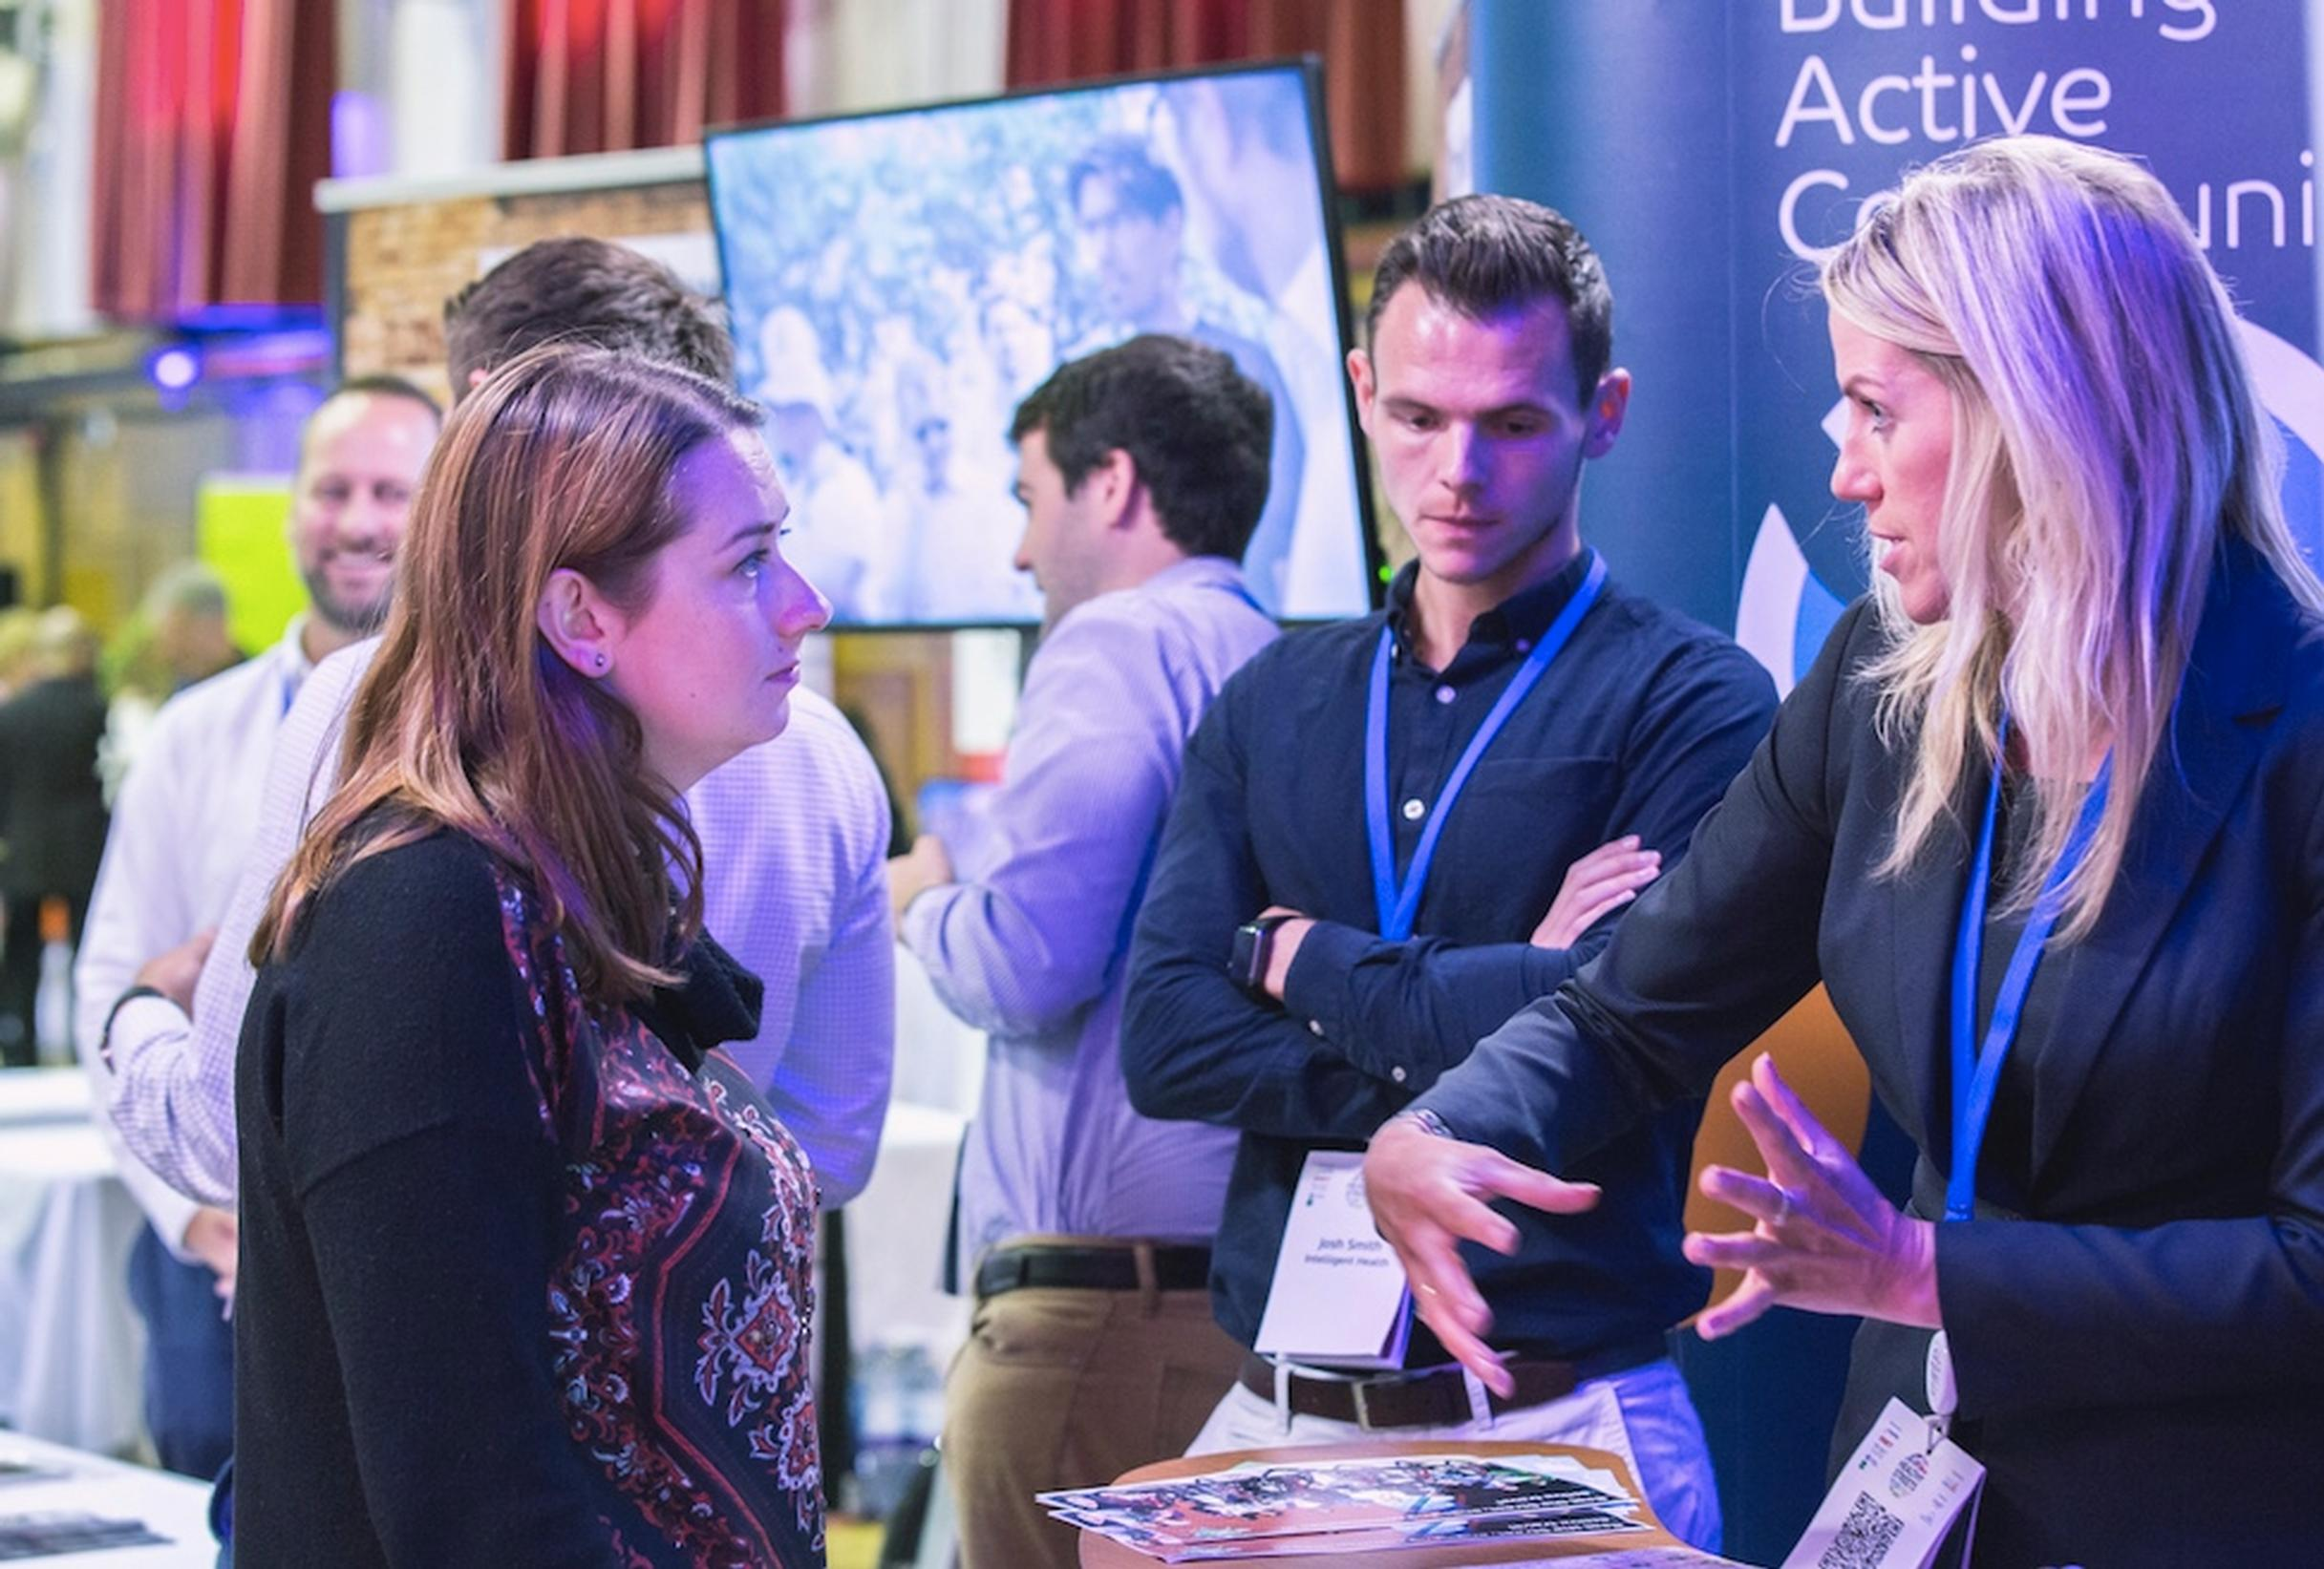 Innovations, strategies and campaigns were showcased at the Healthy Streets exhibition